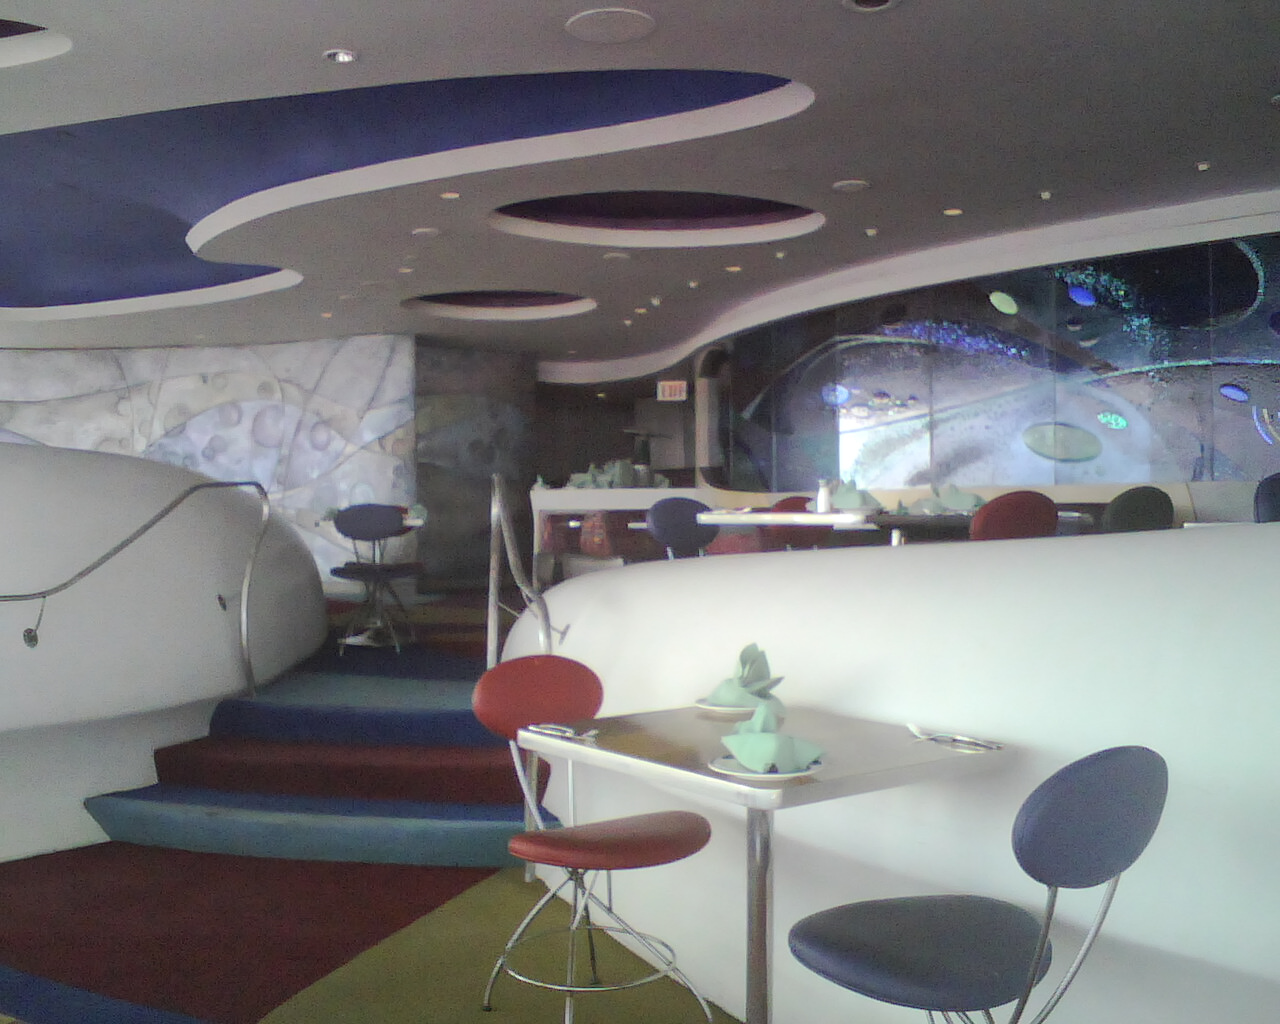 541135711457125726 furthermore Coolest Offices moreover classicfurnishings besides Jaja Resto furthermore File lax moon rocks theme building. on lounge interior design